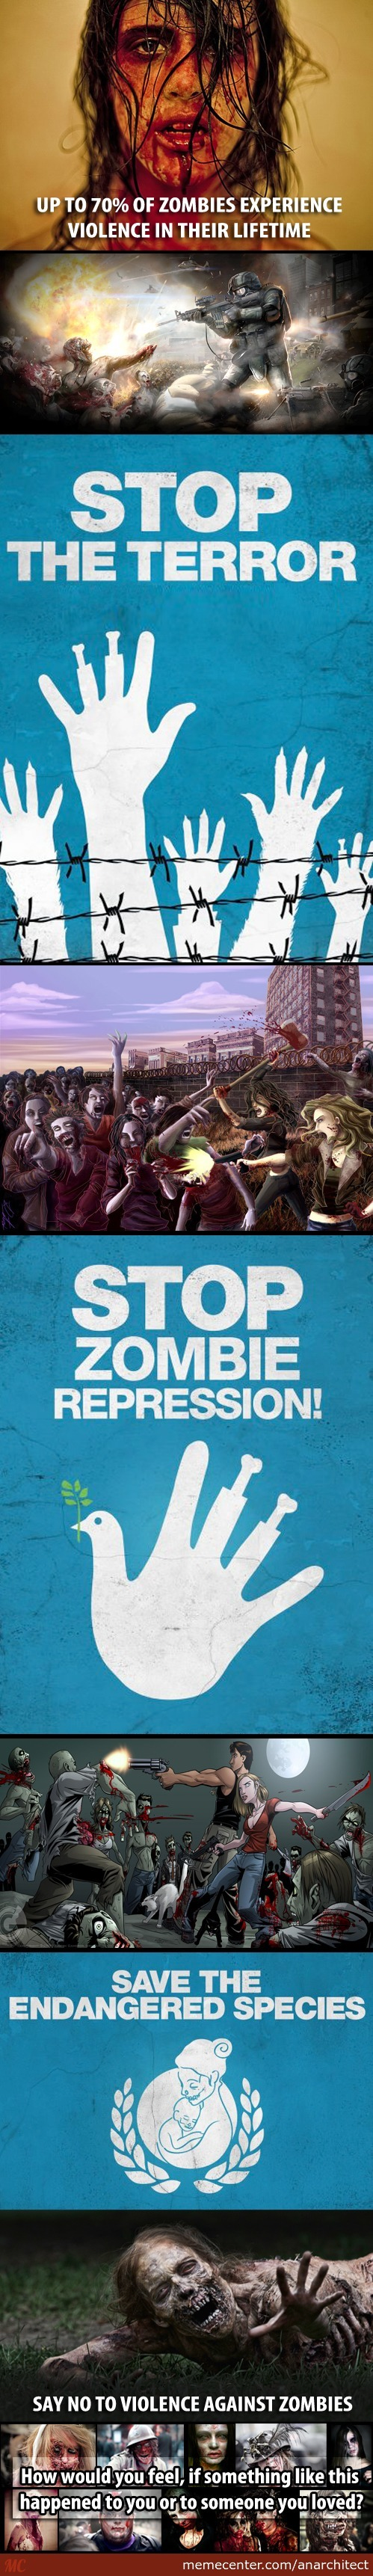 Unite To End Violence Against Zombies